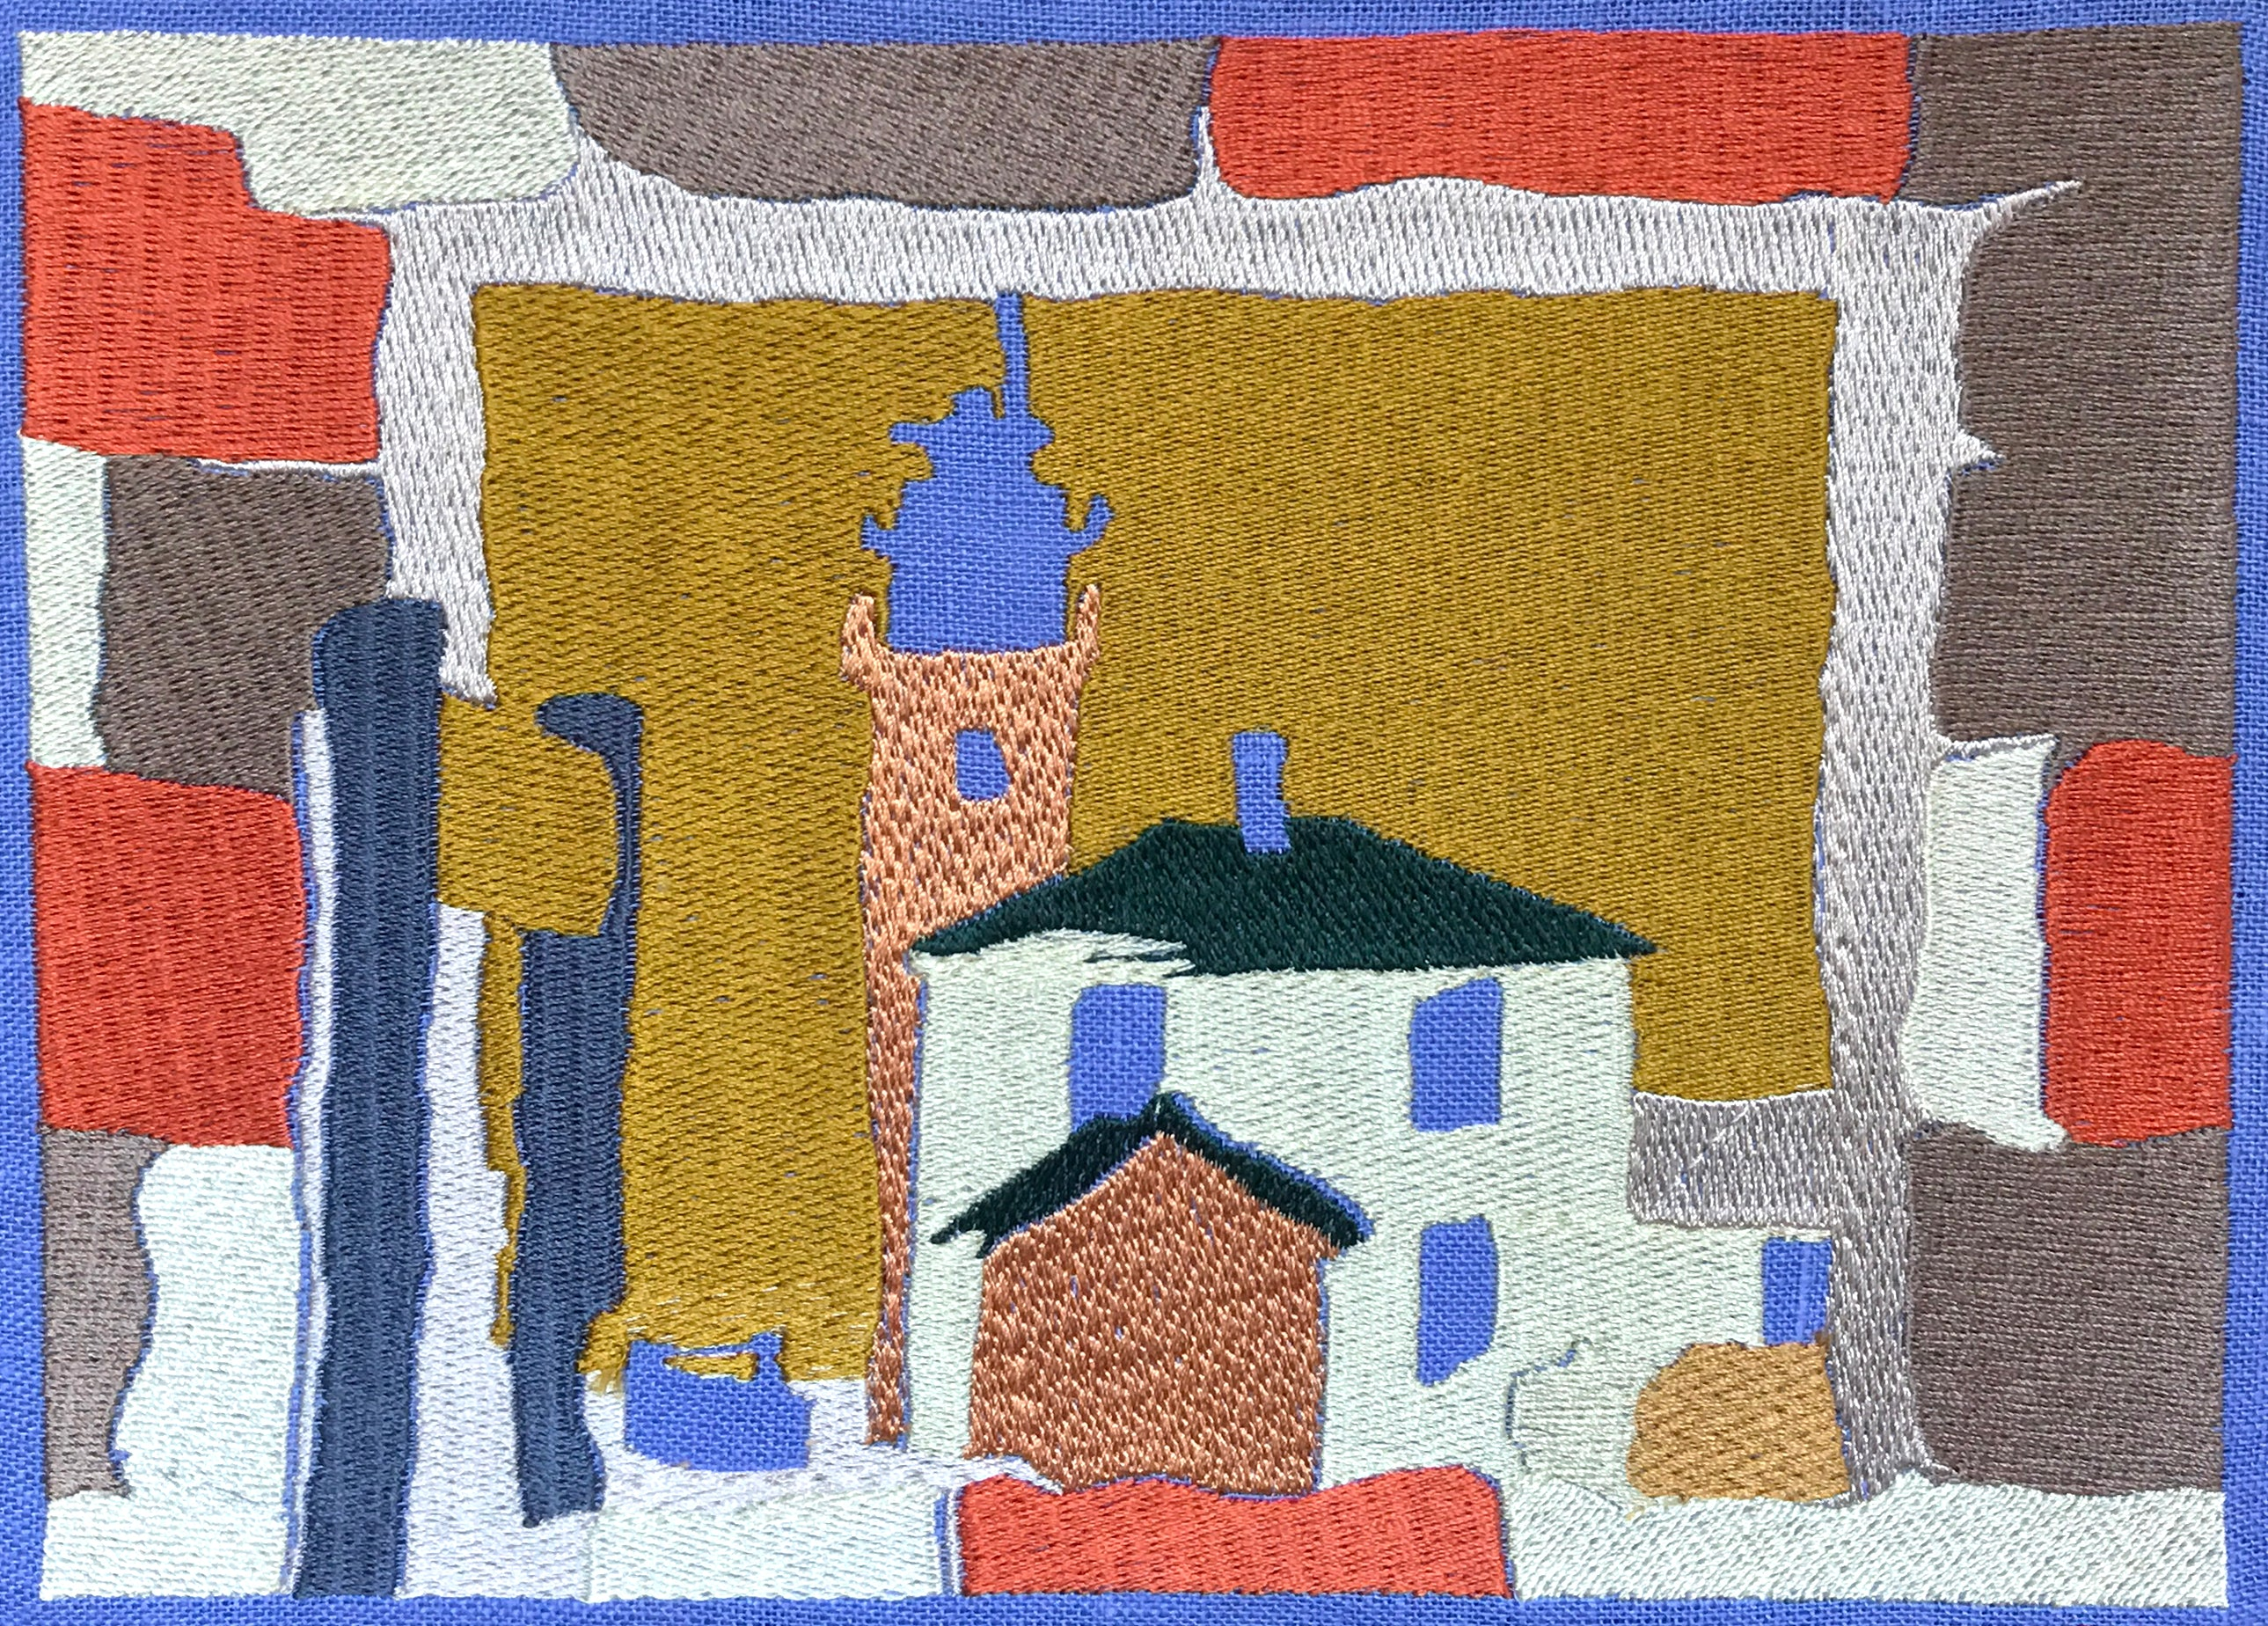 Embroidered Lighthouse No. 1